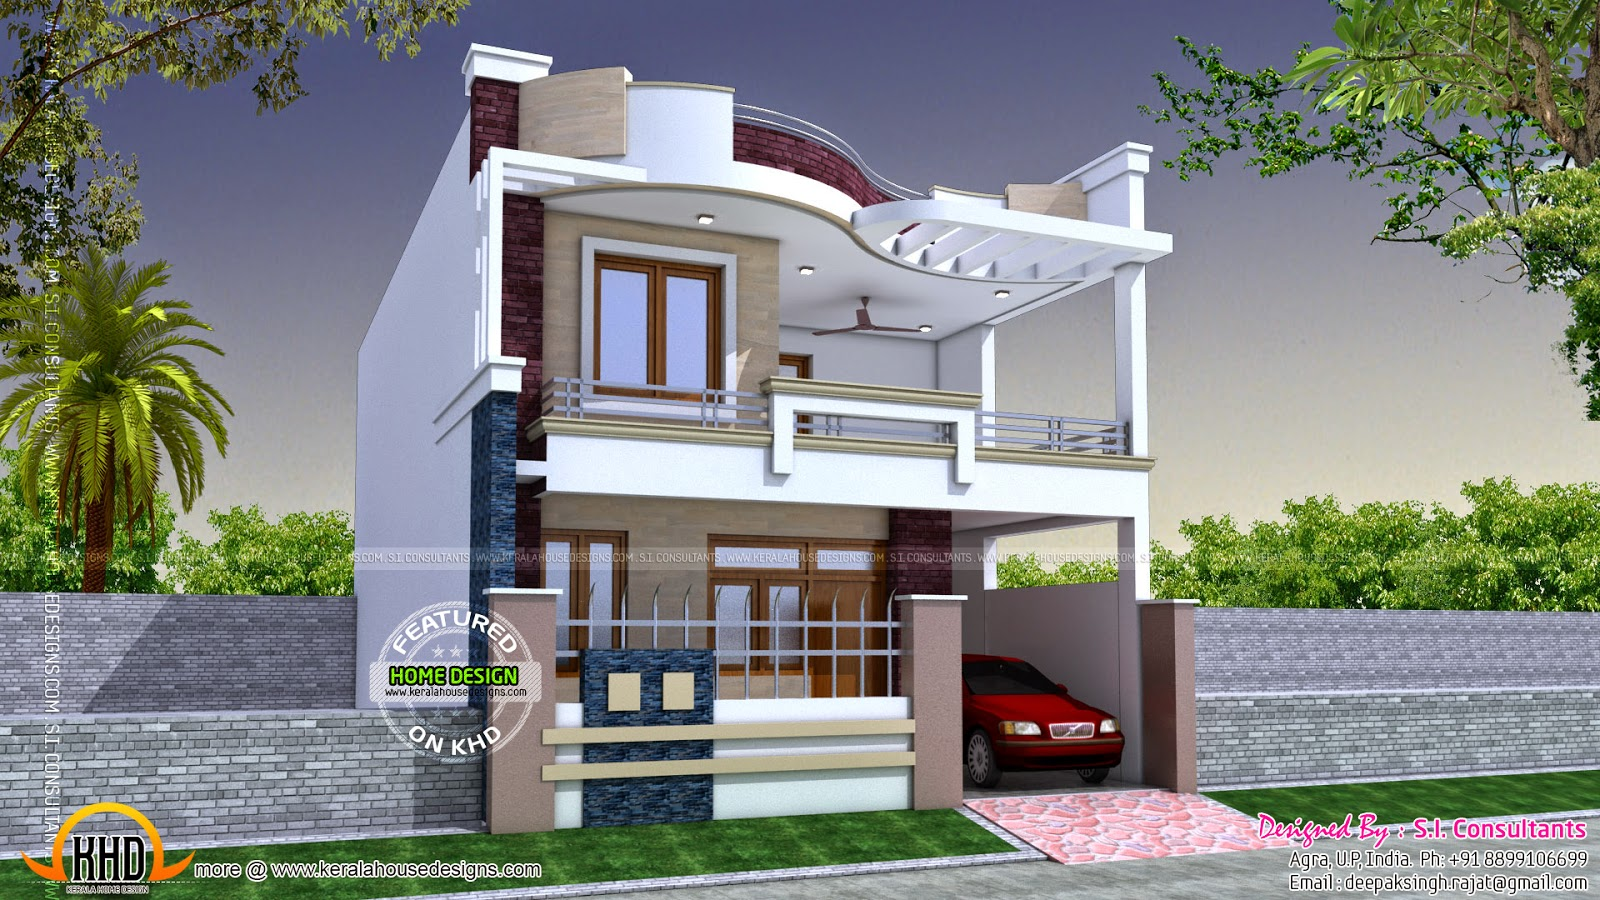 Modern indian home design kerala home design and floor plans for Home design images gallery